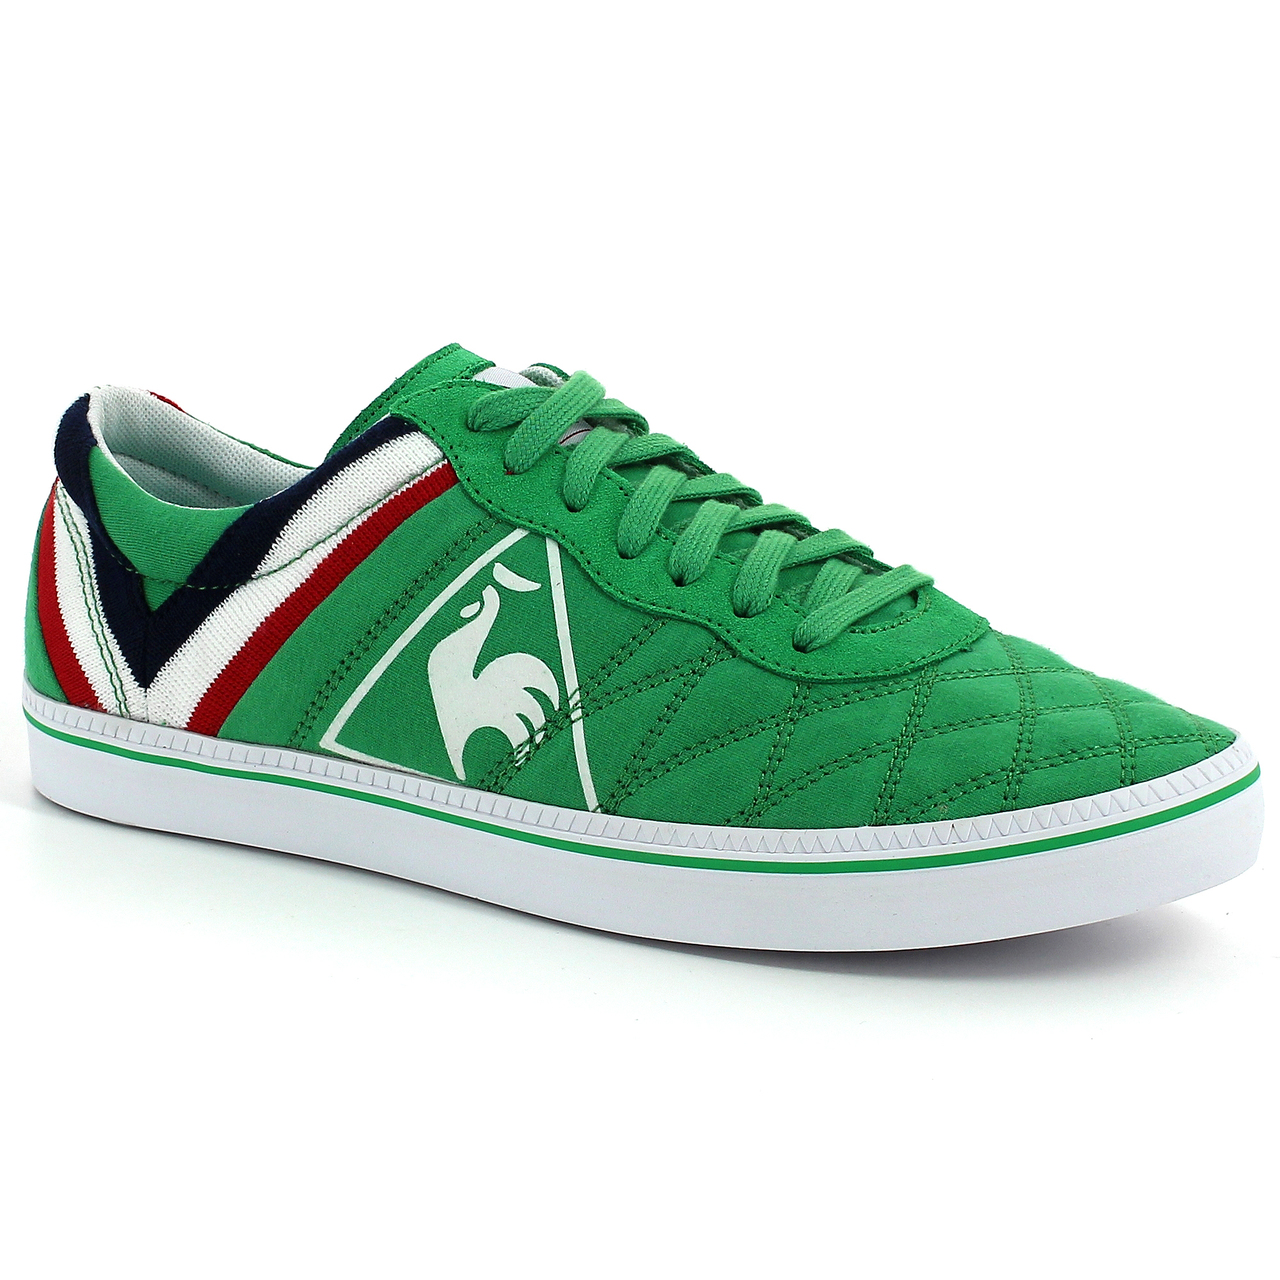 le coq sportif asse troca green jersey green shoes football fashion blog. Black Bedroom Furniture Sets. Home Design Ideas